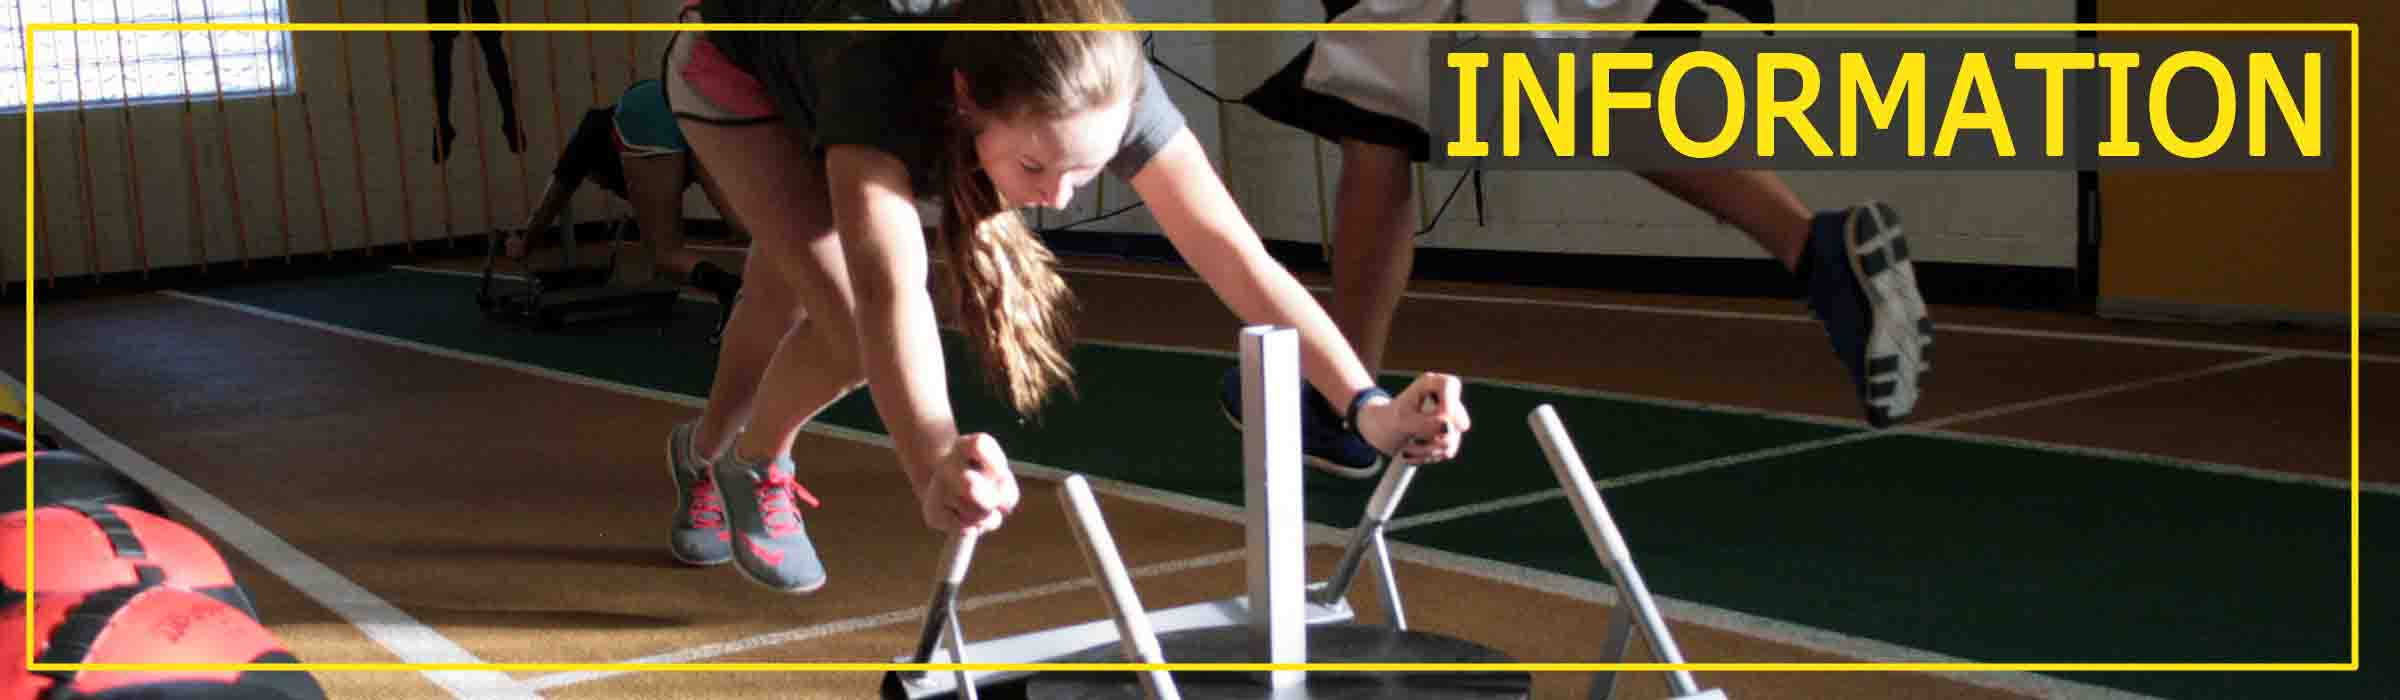 Sports Performance Program class Sled Workout for information